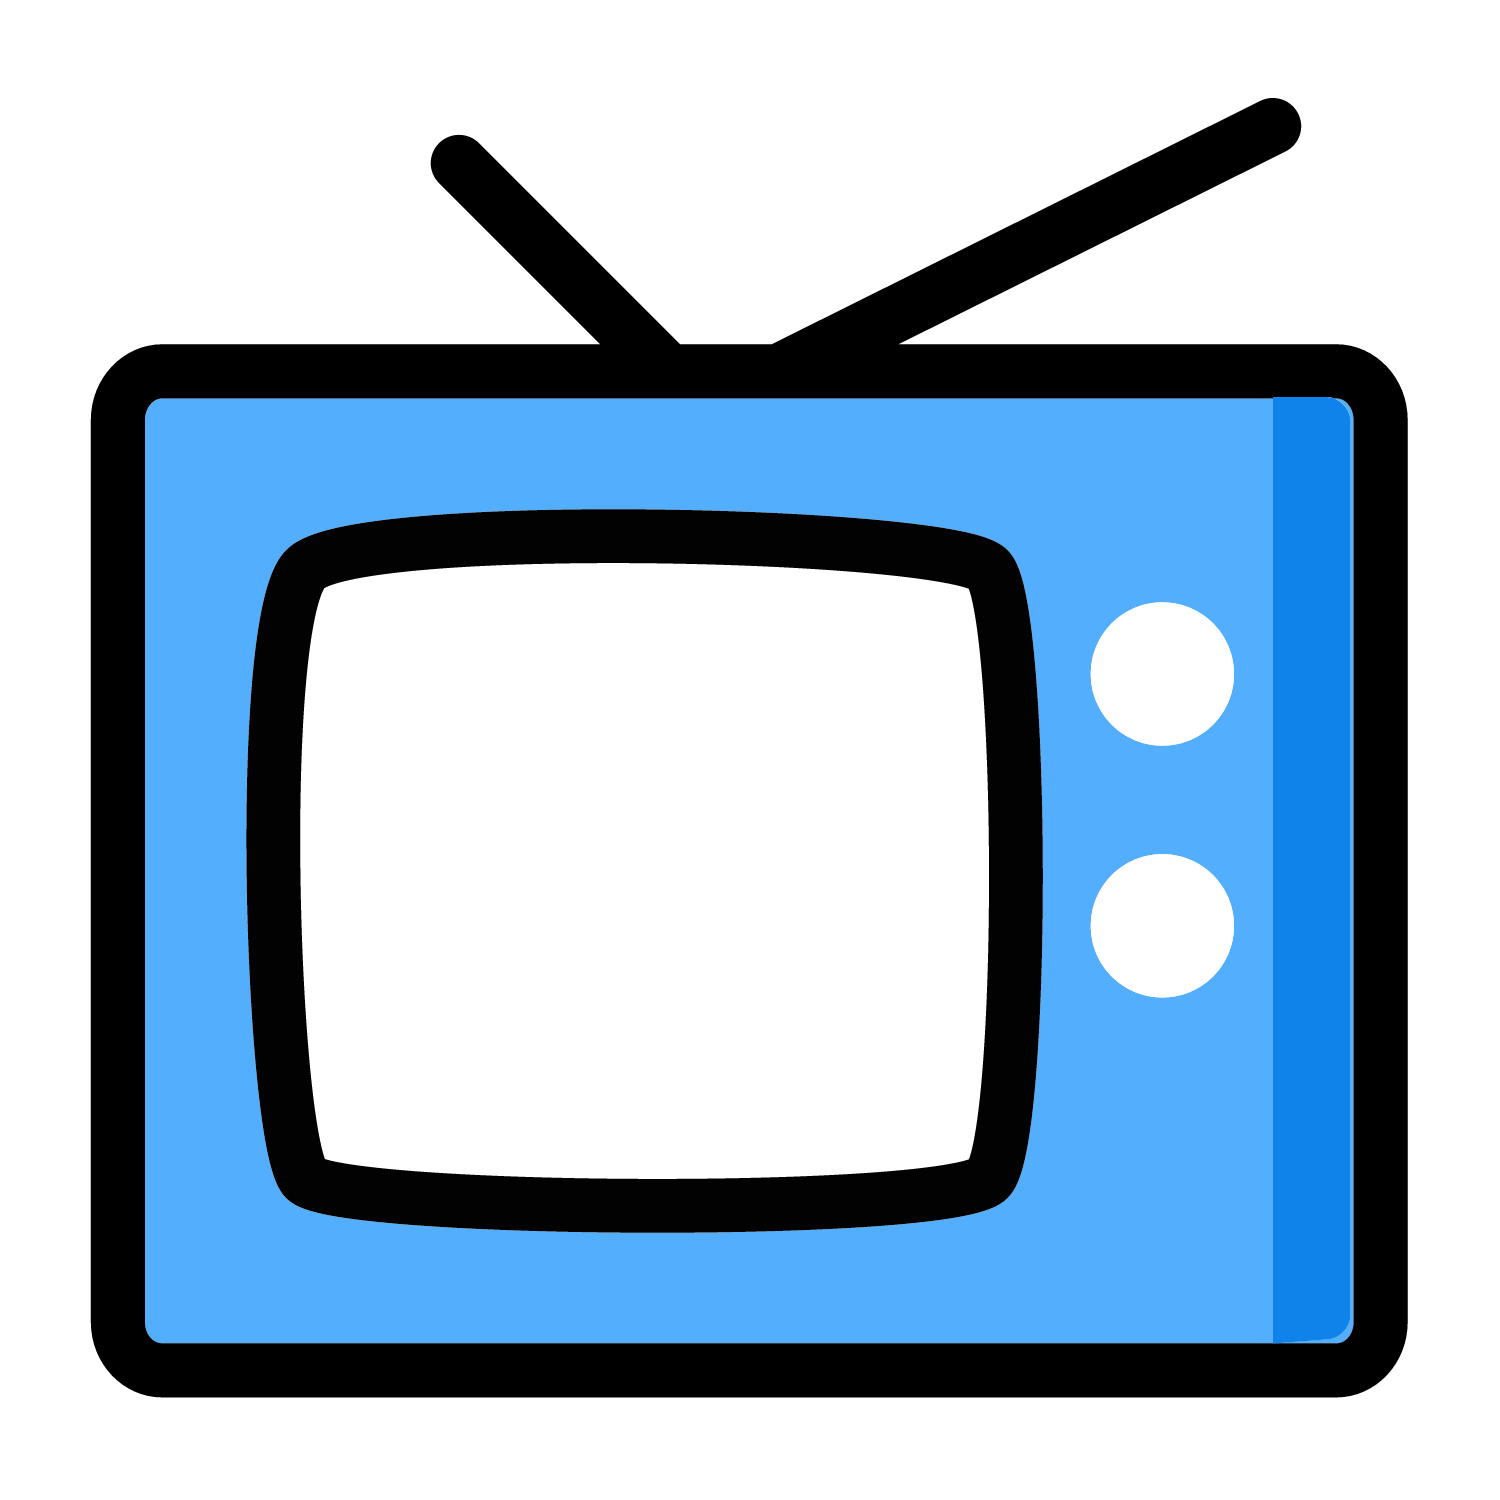 Television clipart tv broadcasting. China central color vector